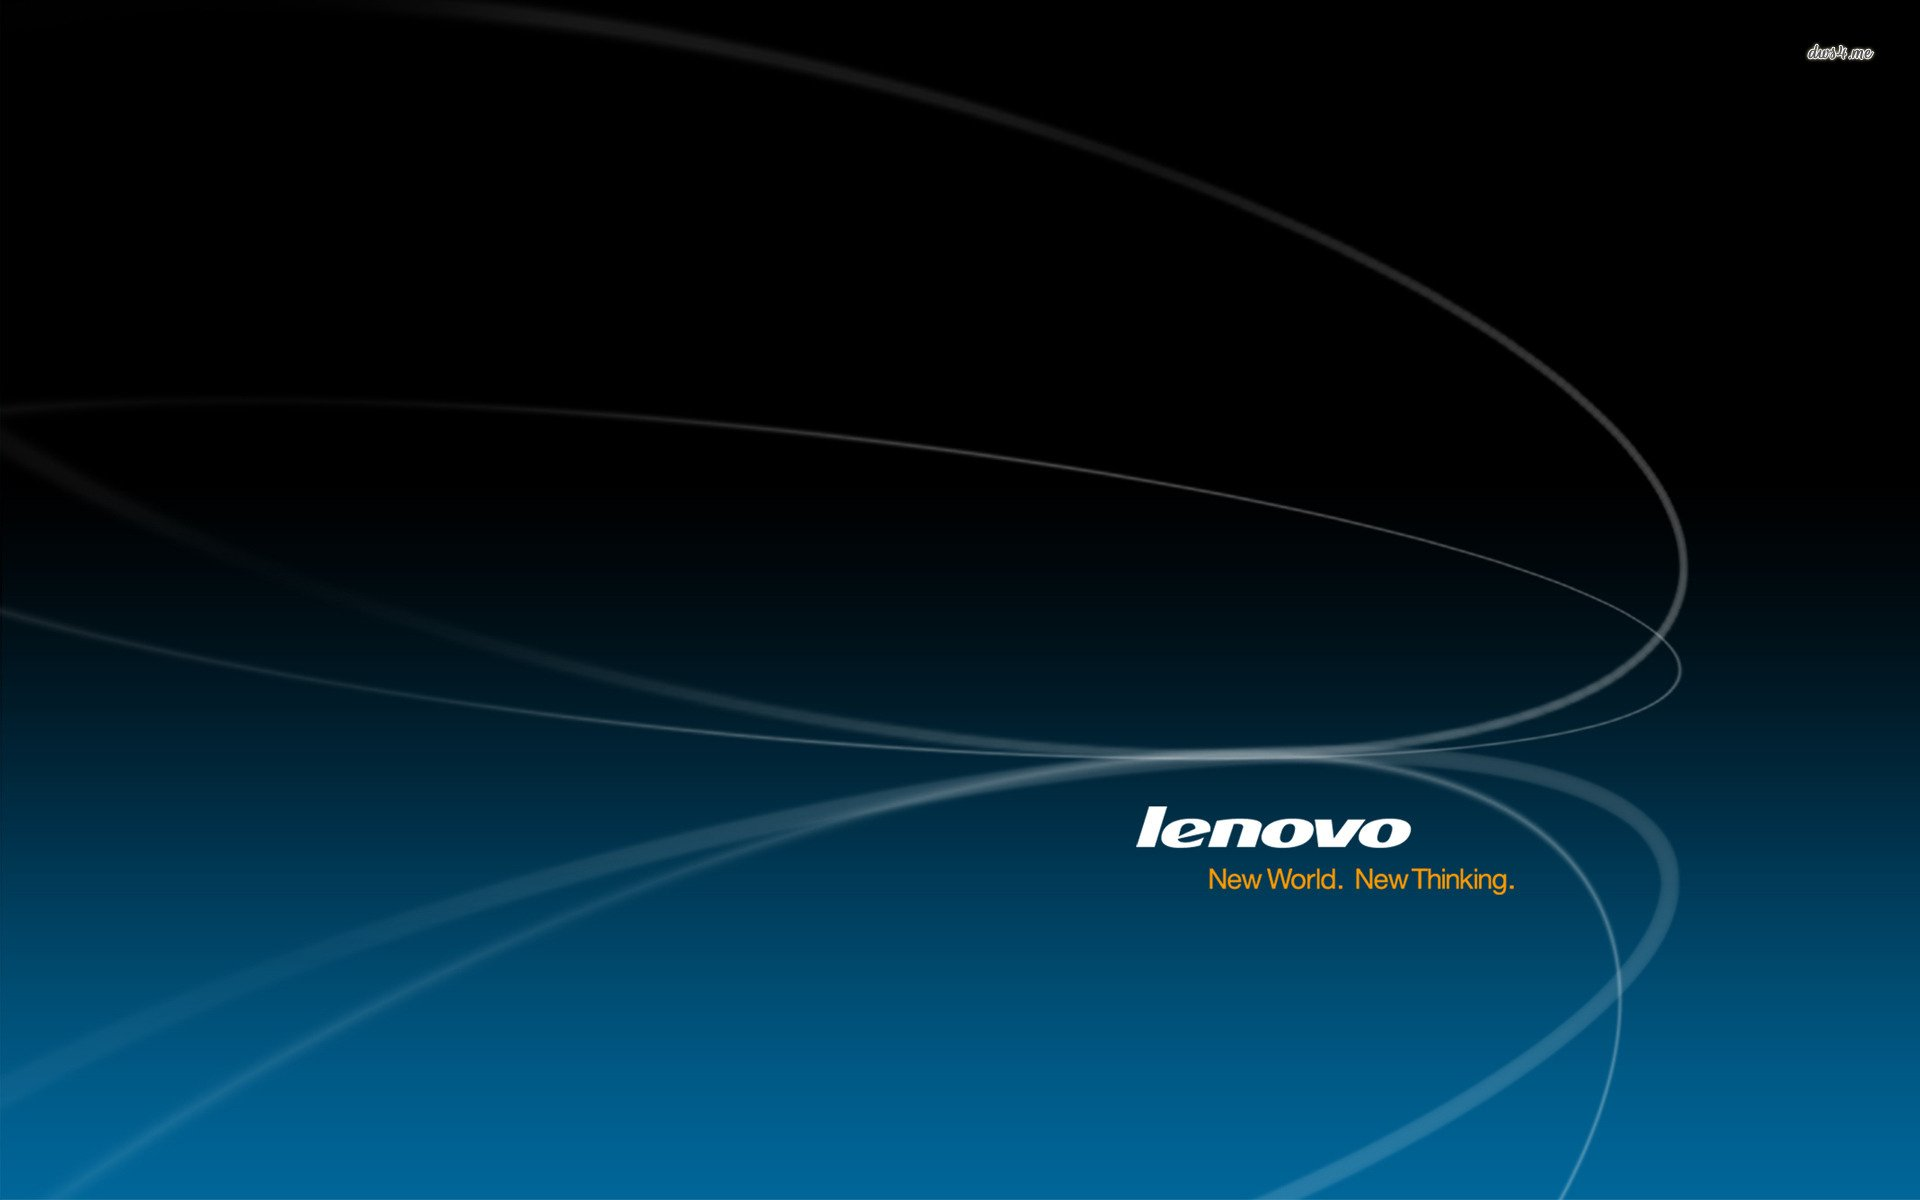 lenovo 1366x768 wallpapers wallpapersafari